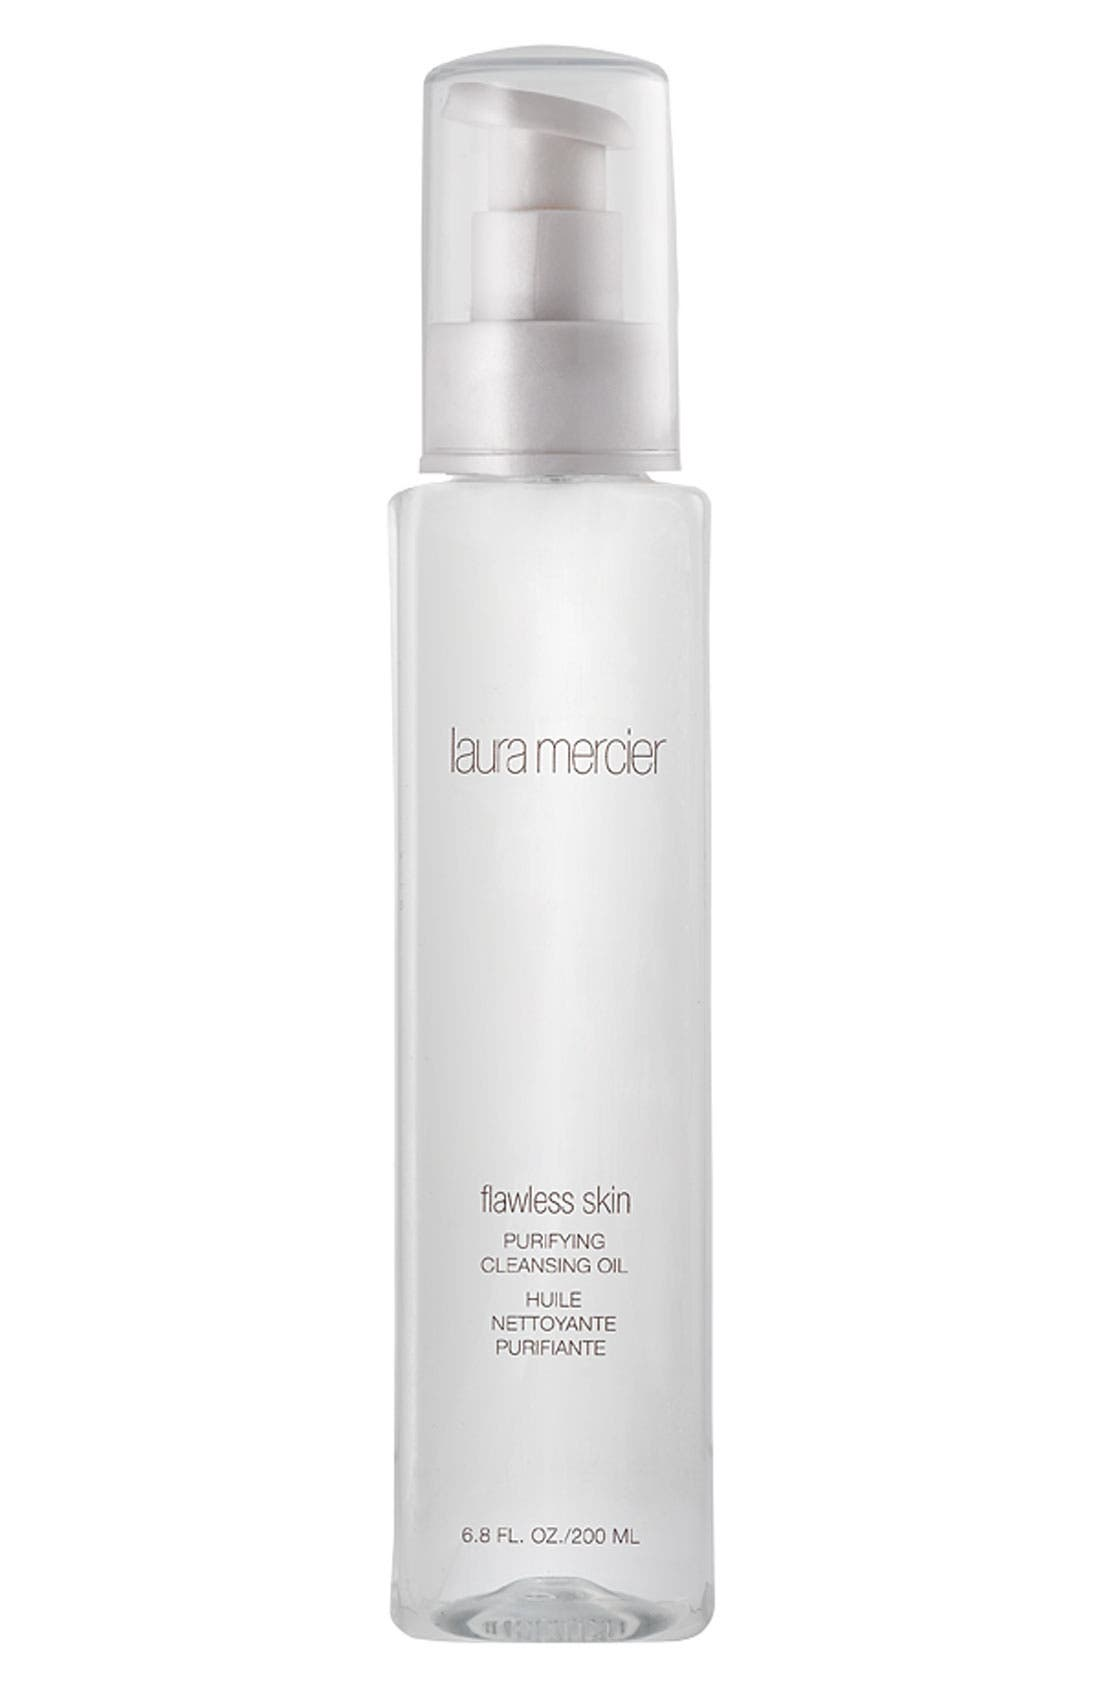 LAURA MERCIER 'Flawless Skin' Purifying Cleansing Oil, Main, color, 000